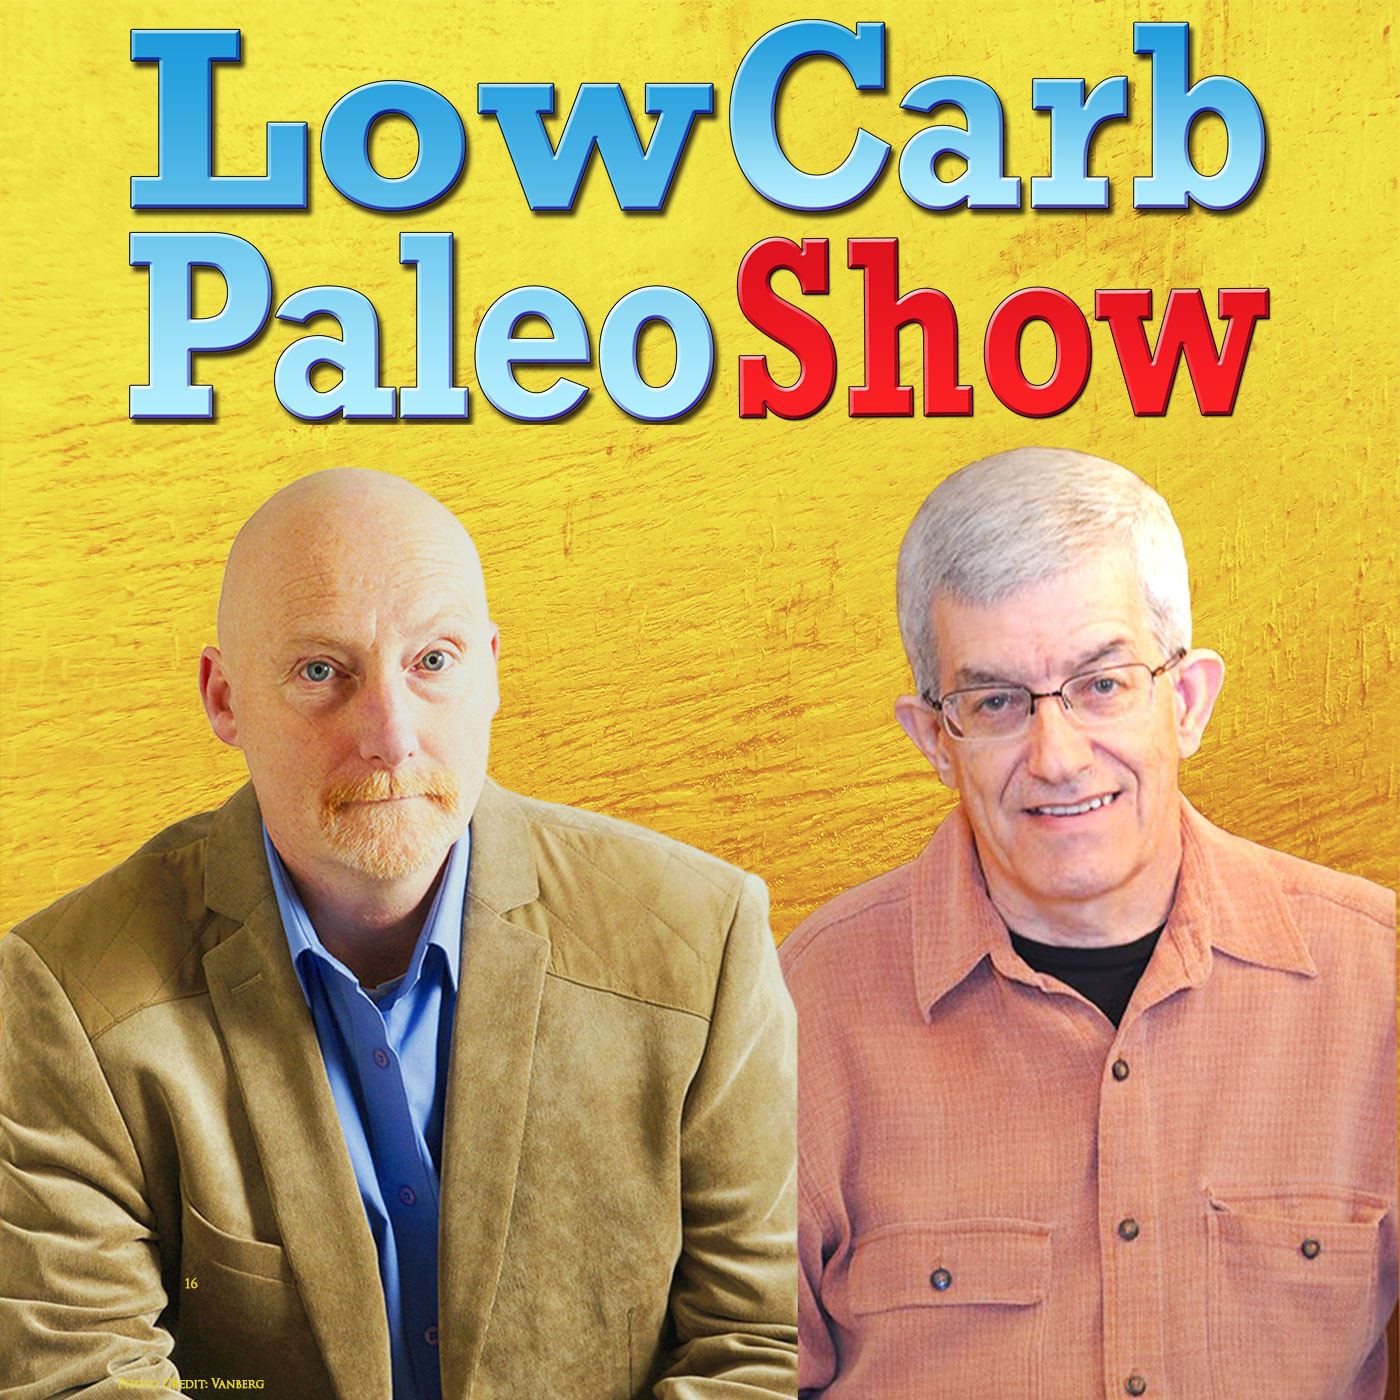 Low Carb Paleo Show #001 – Why Low Carb and Paleo are so Similar